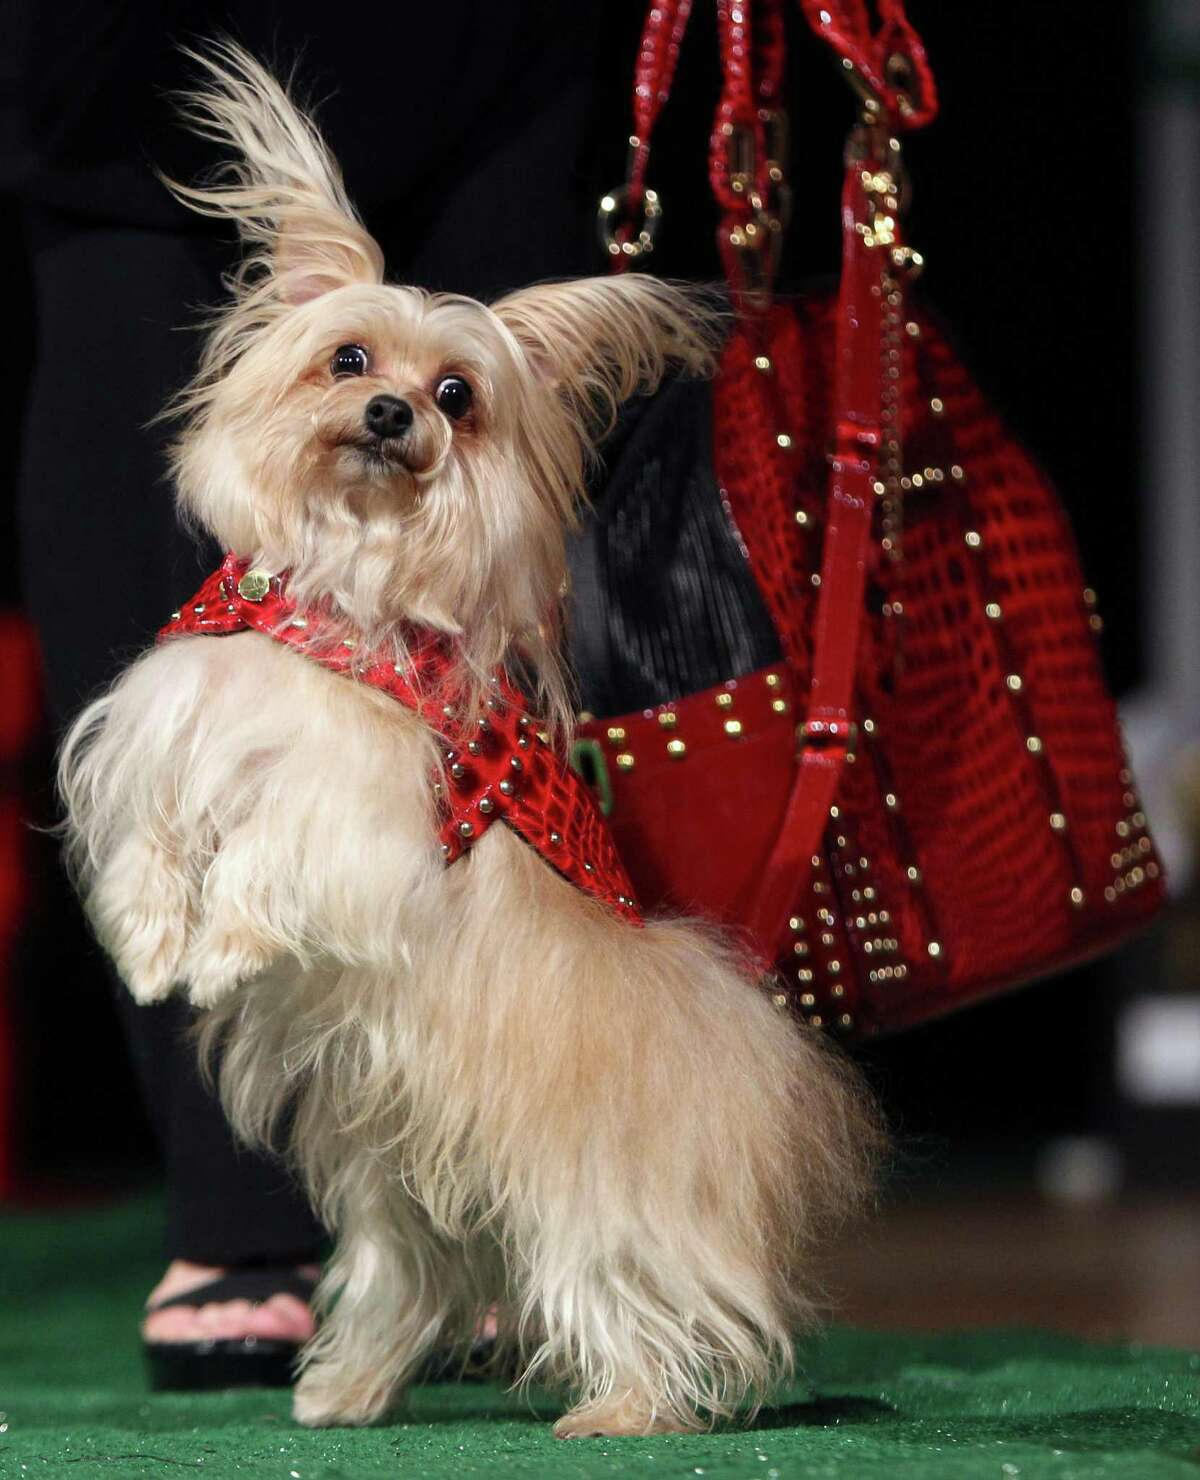 Puccini wears a an outfit that matches a pet carrier during a pet fashion show at the Fashion Institute of Technology in New York, Wednesday, April 18, 2012.